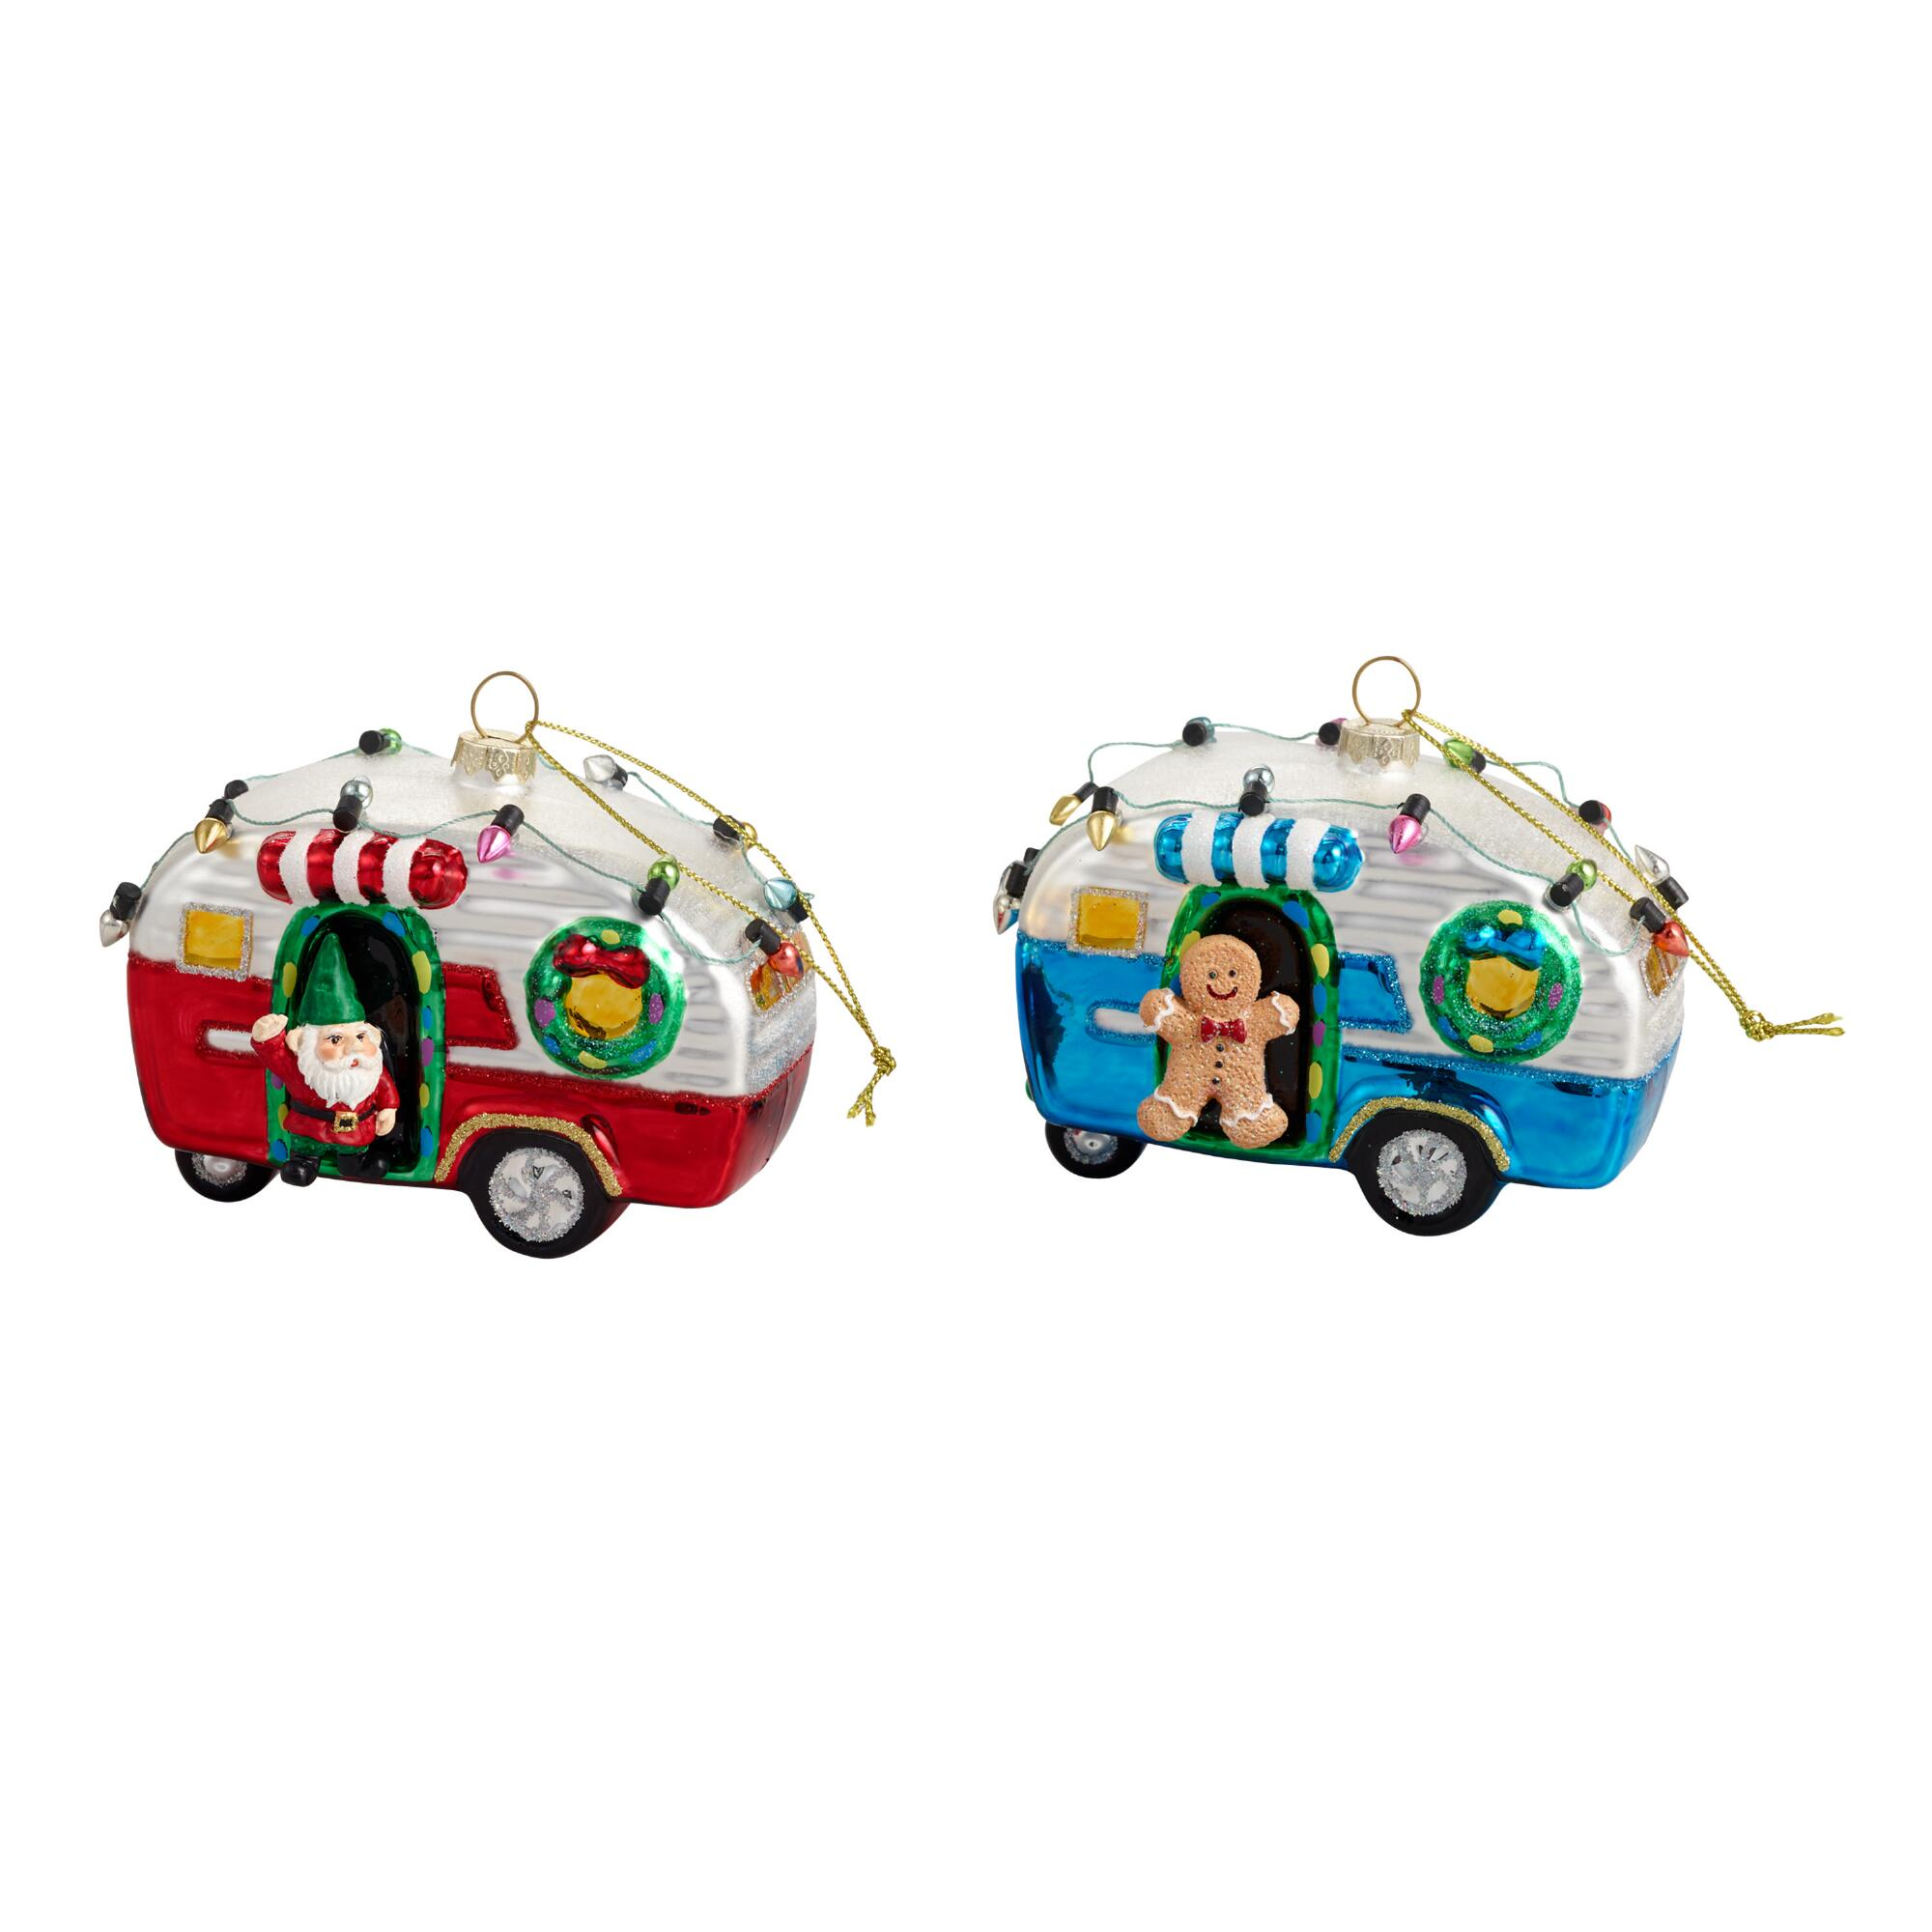 Glass Retro Trailer Ornaments Set of 2 by World Market